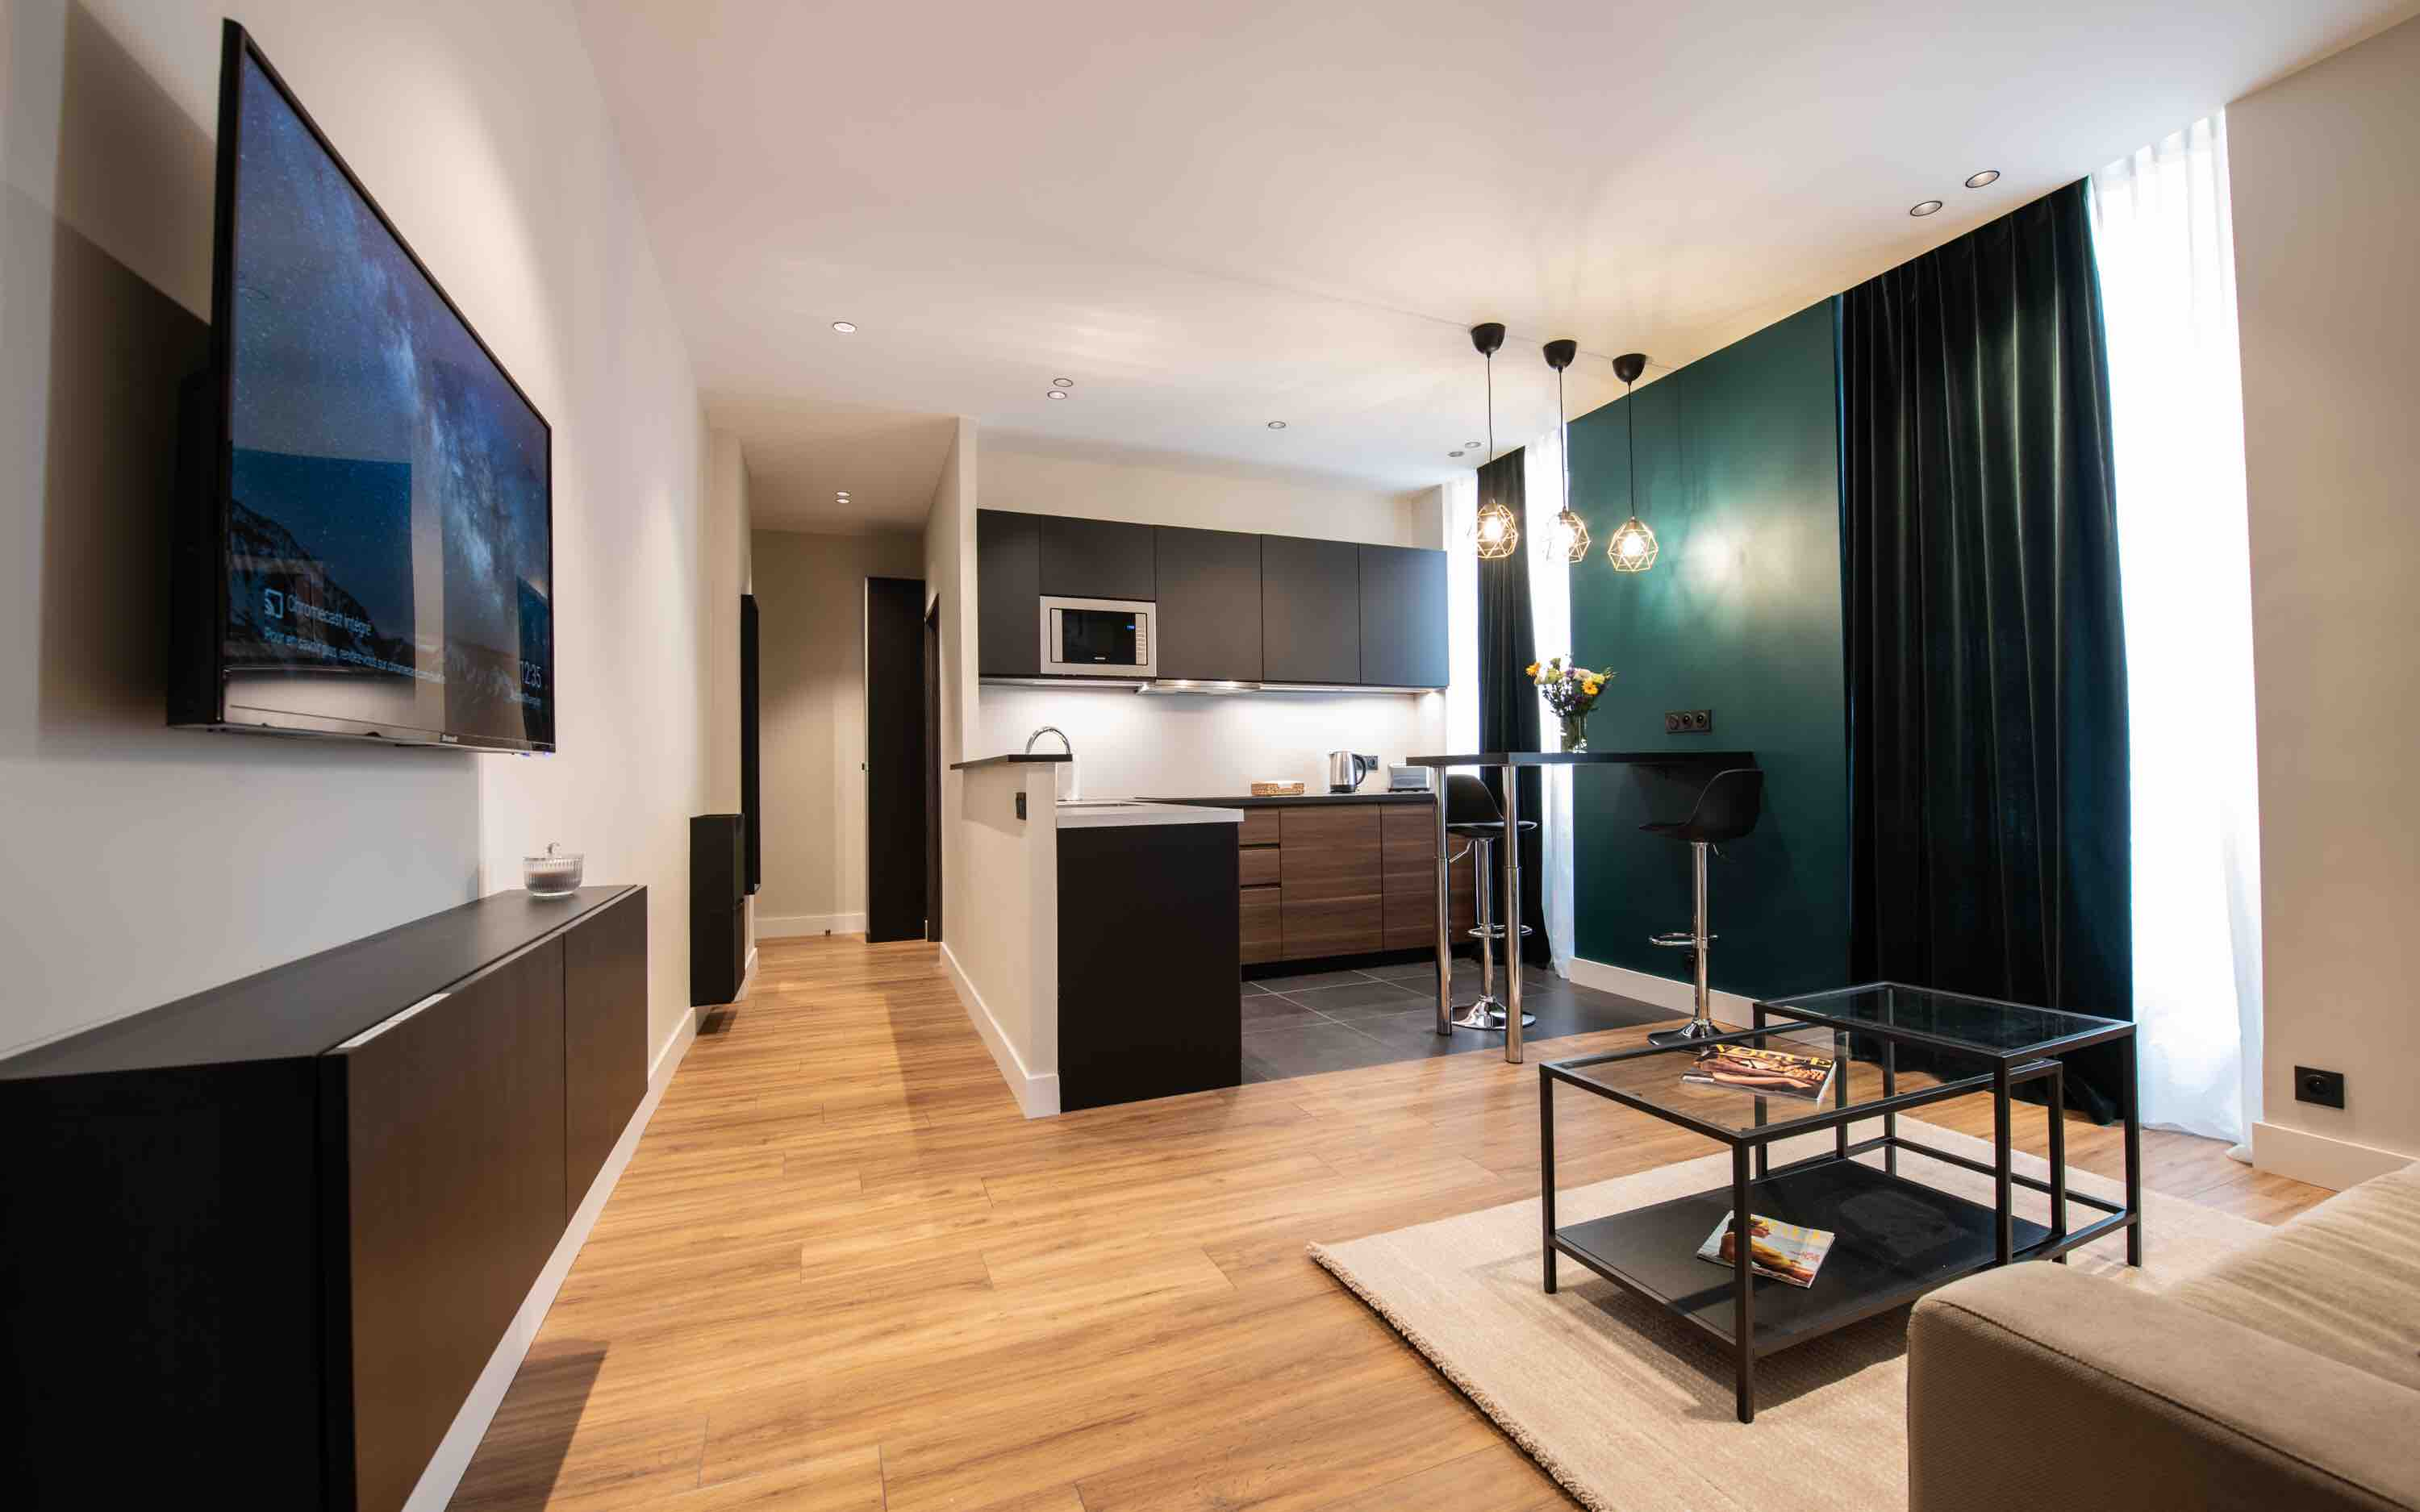 Monaco Central Modern 1 Bedroom Apartment Apartments For Rent In Beausoleil Provence Alpes Cote D Azur France